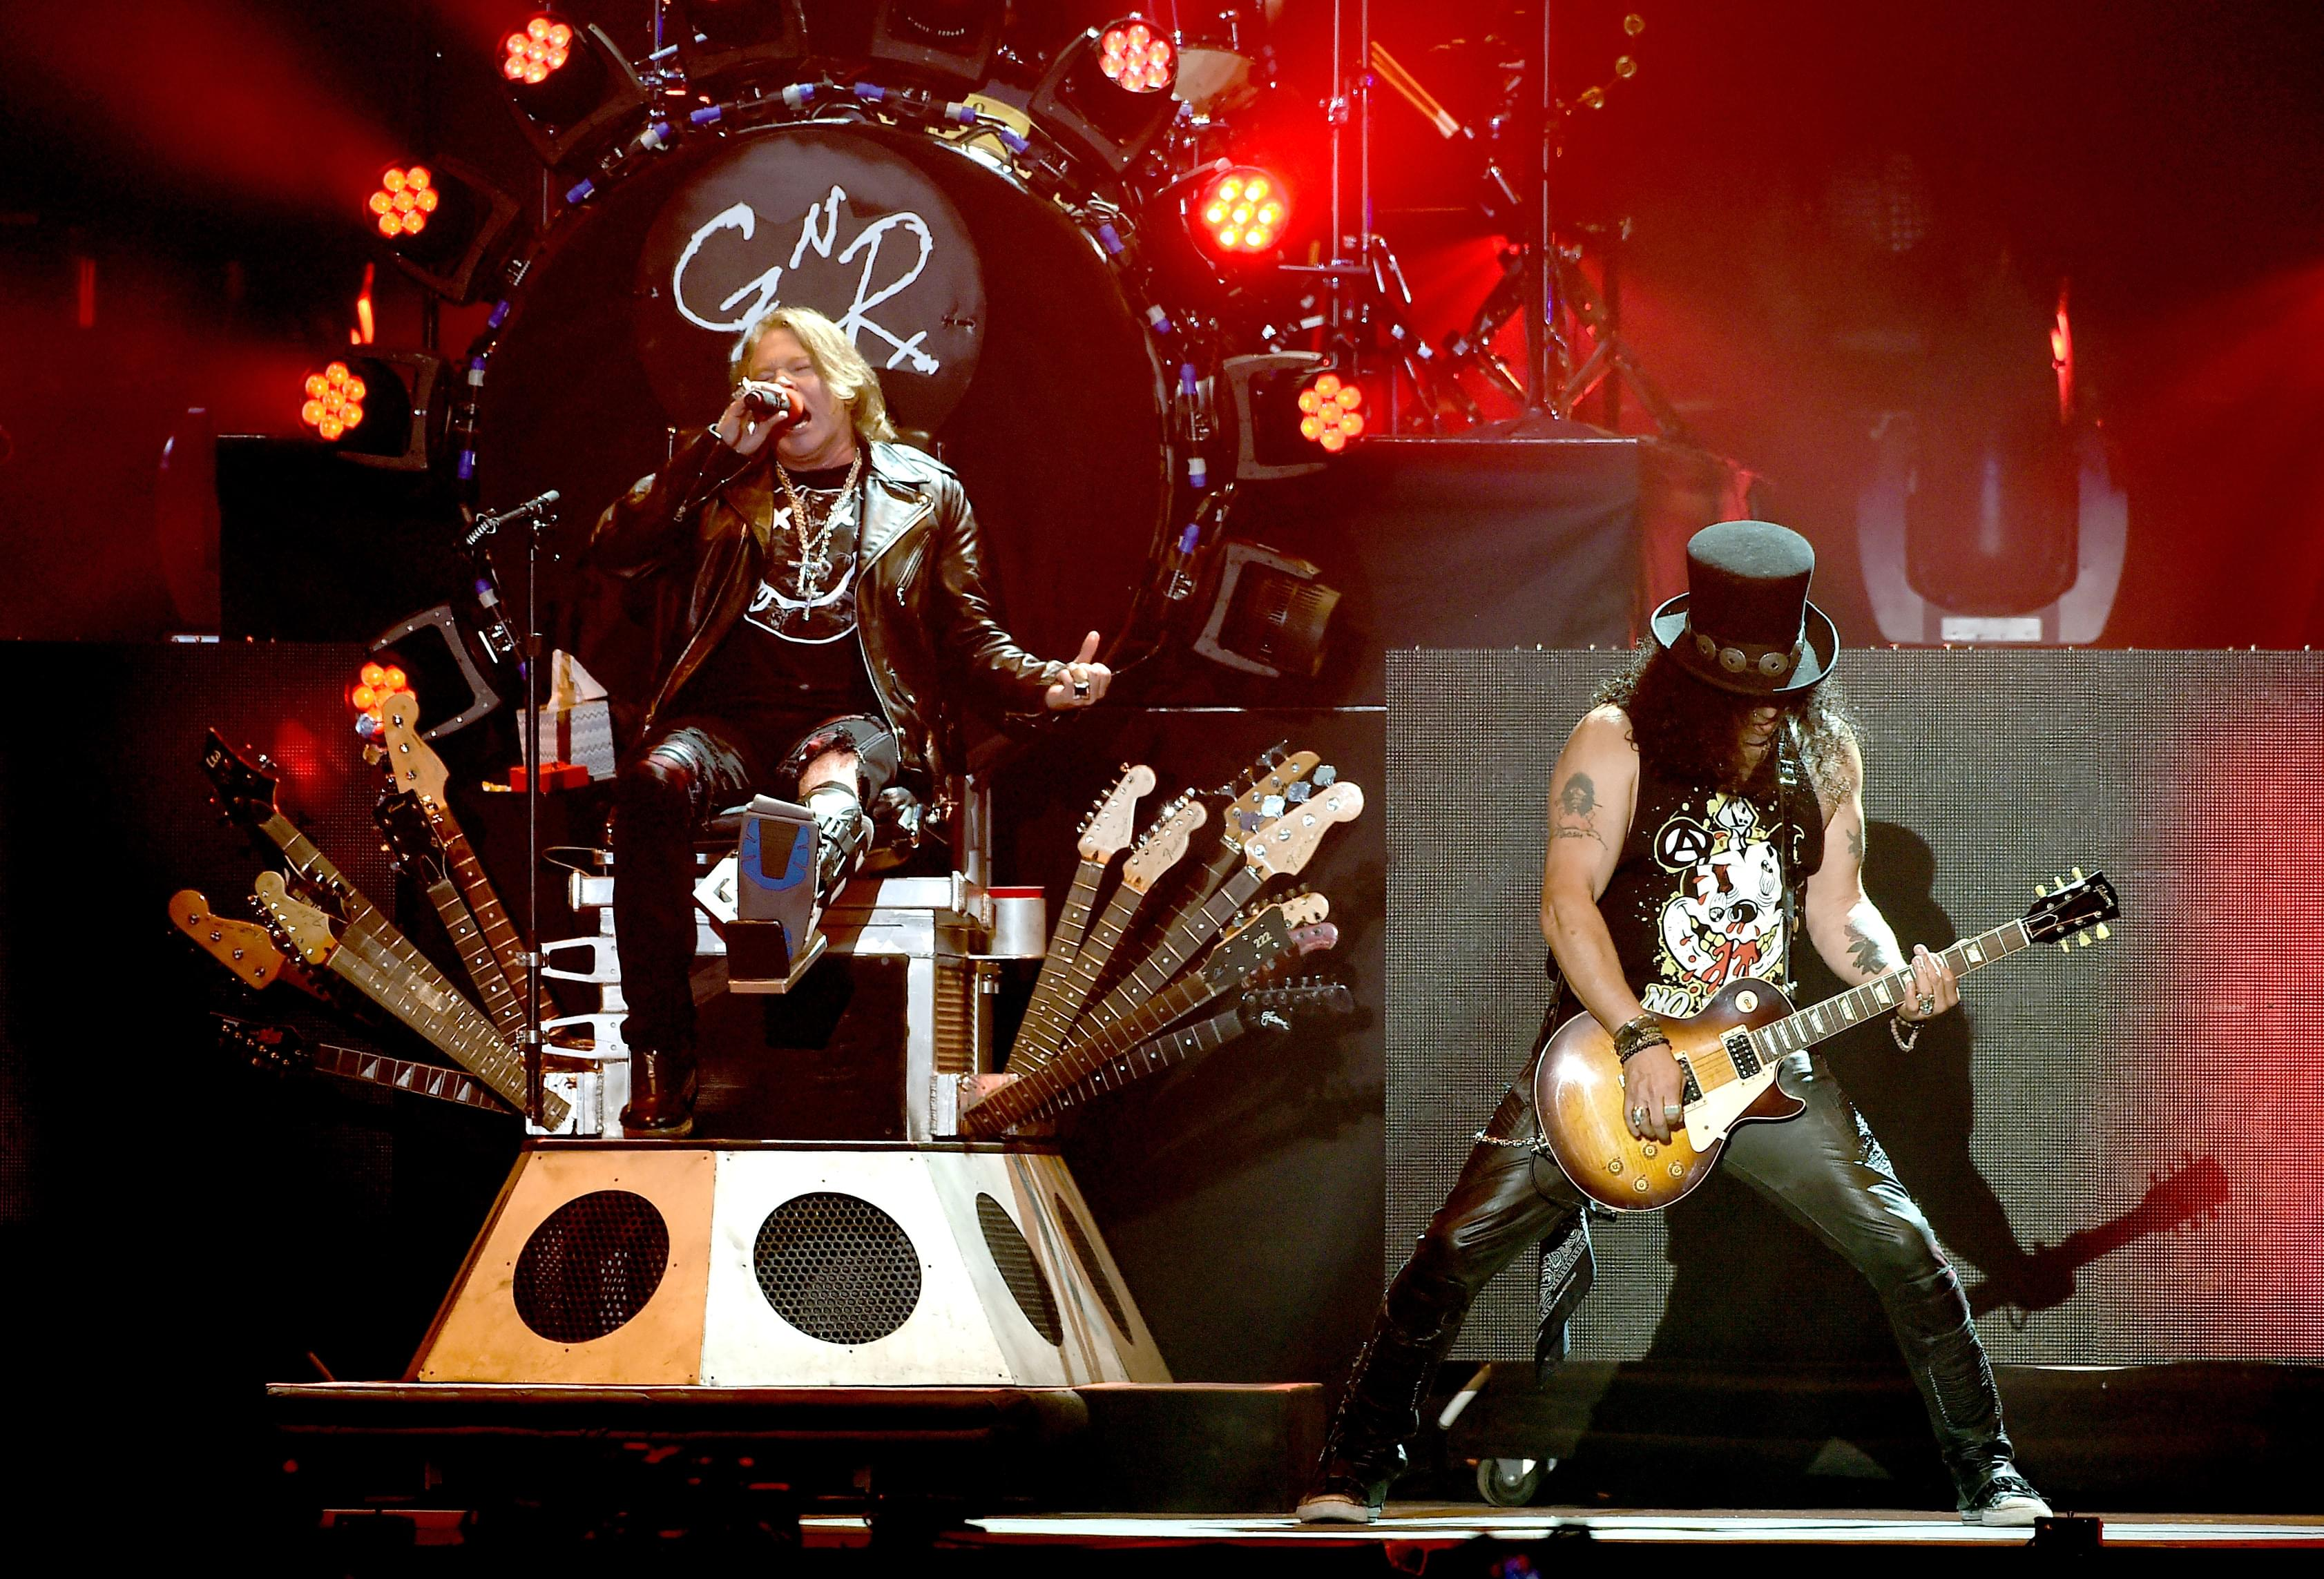 Guns N' Roses Post Their Rescheduled U.S. Tour Dates…Too Early?